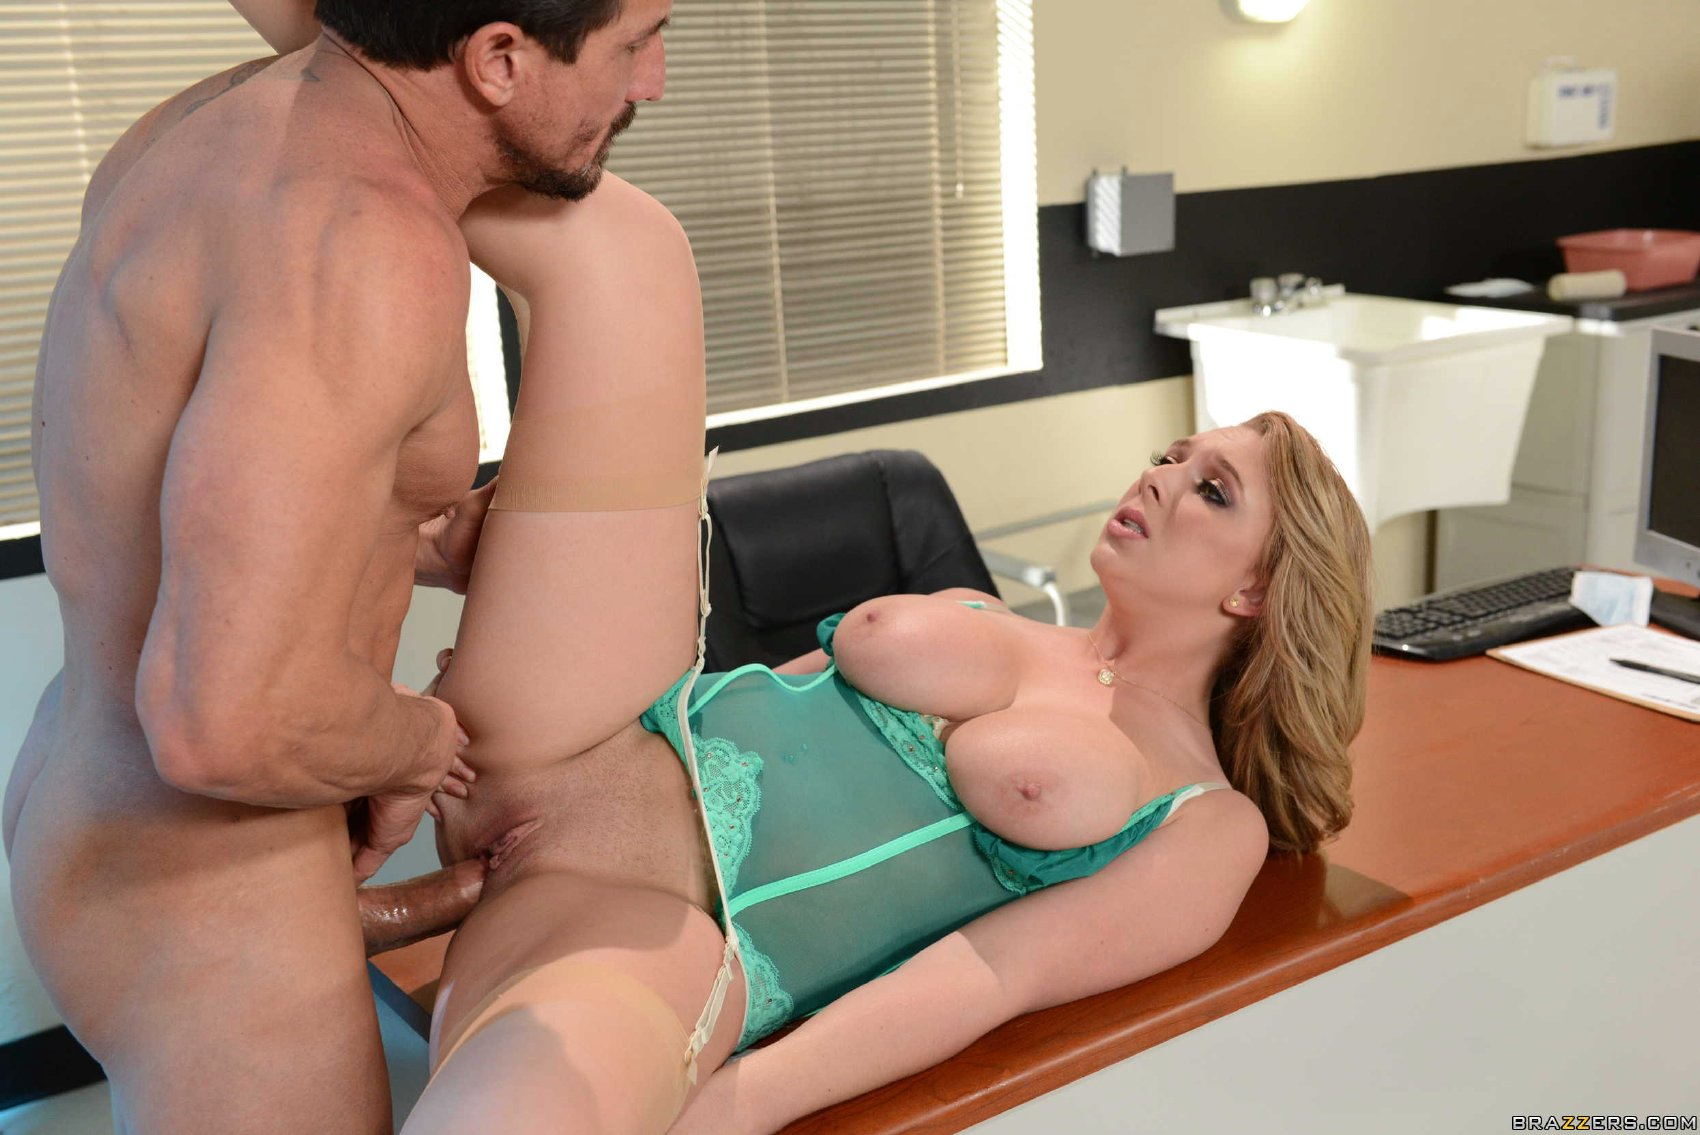 Hot Doctor Brooke Wylde In Stockings And Heels Fucking Her Patient